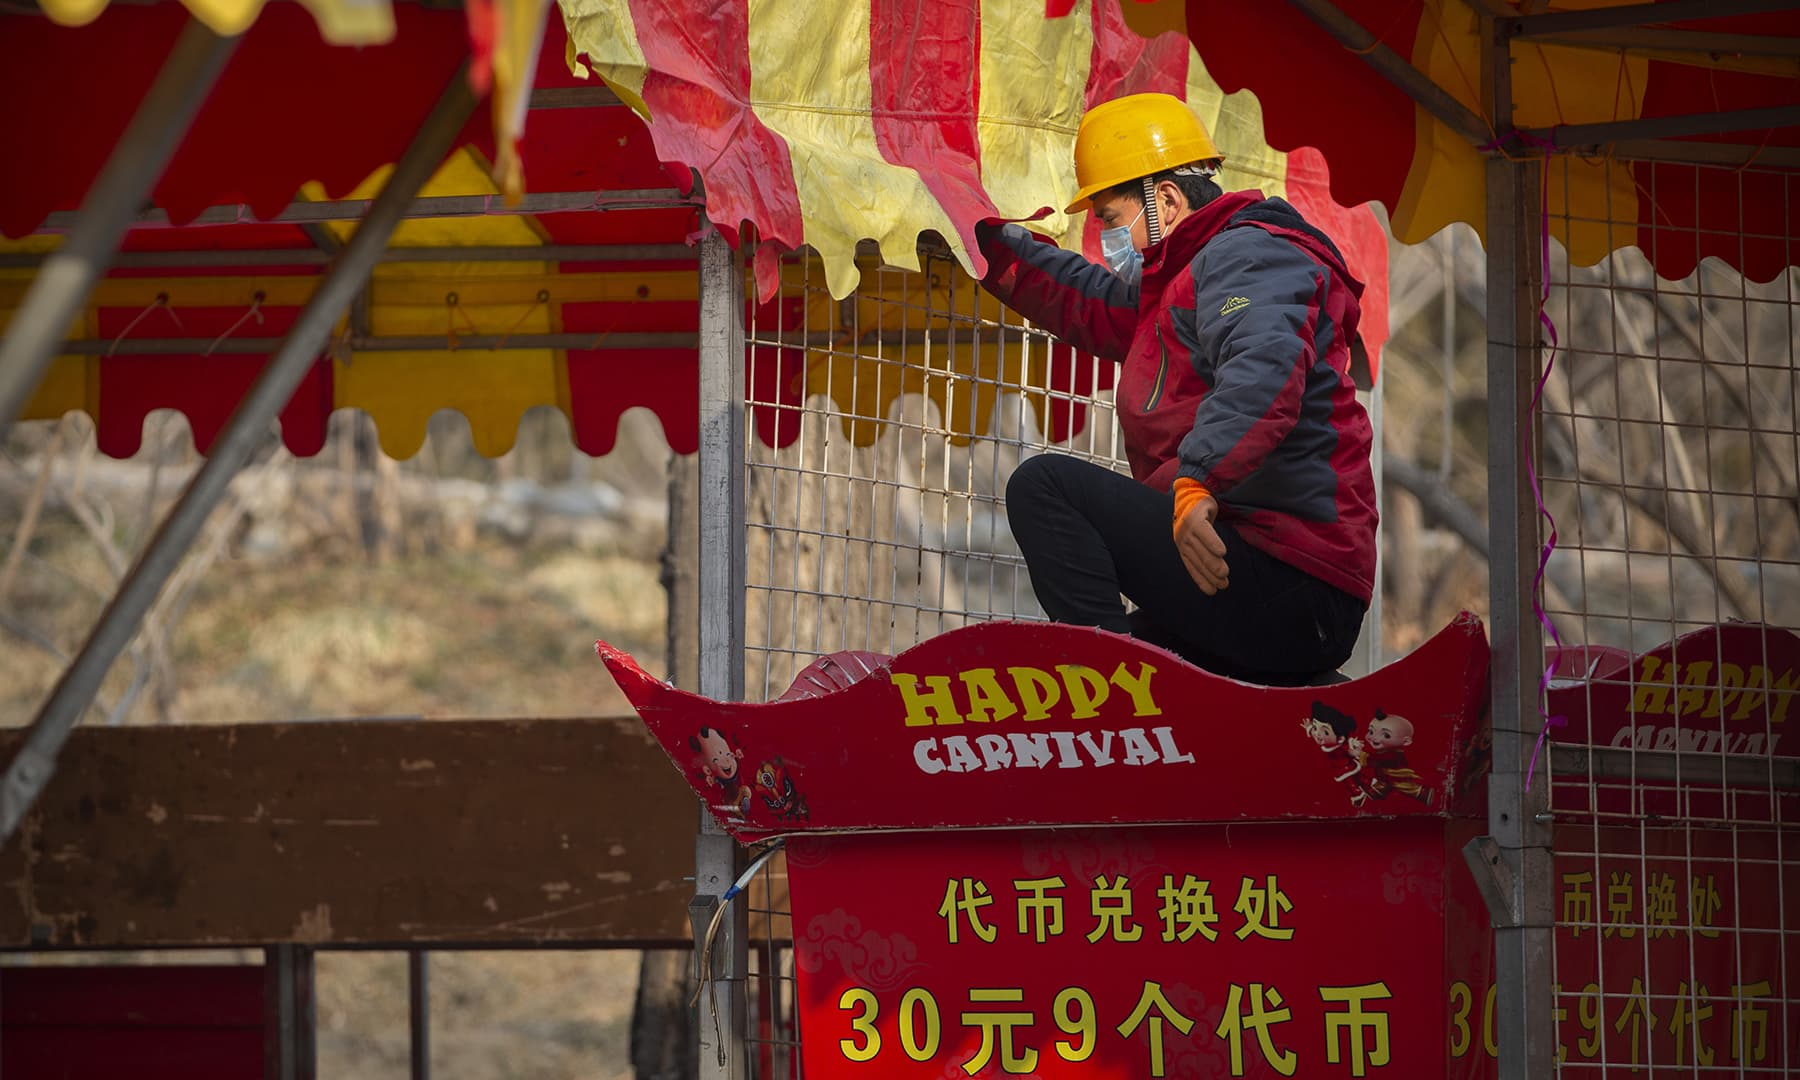 A worker dismantles a carnival built for a canceled Lunar New Year temple fair at Longtan Park in Beijing on January 25, 2020. — AP